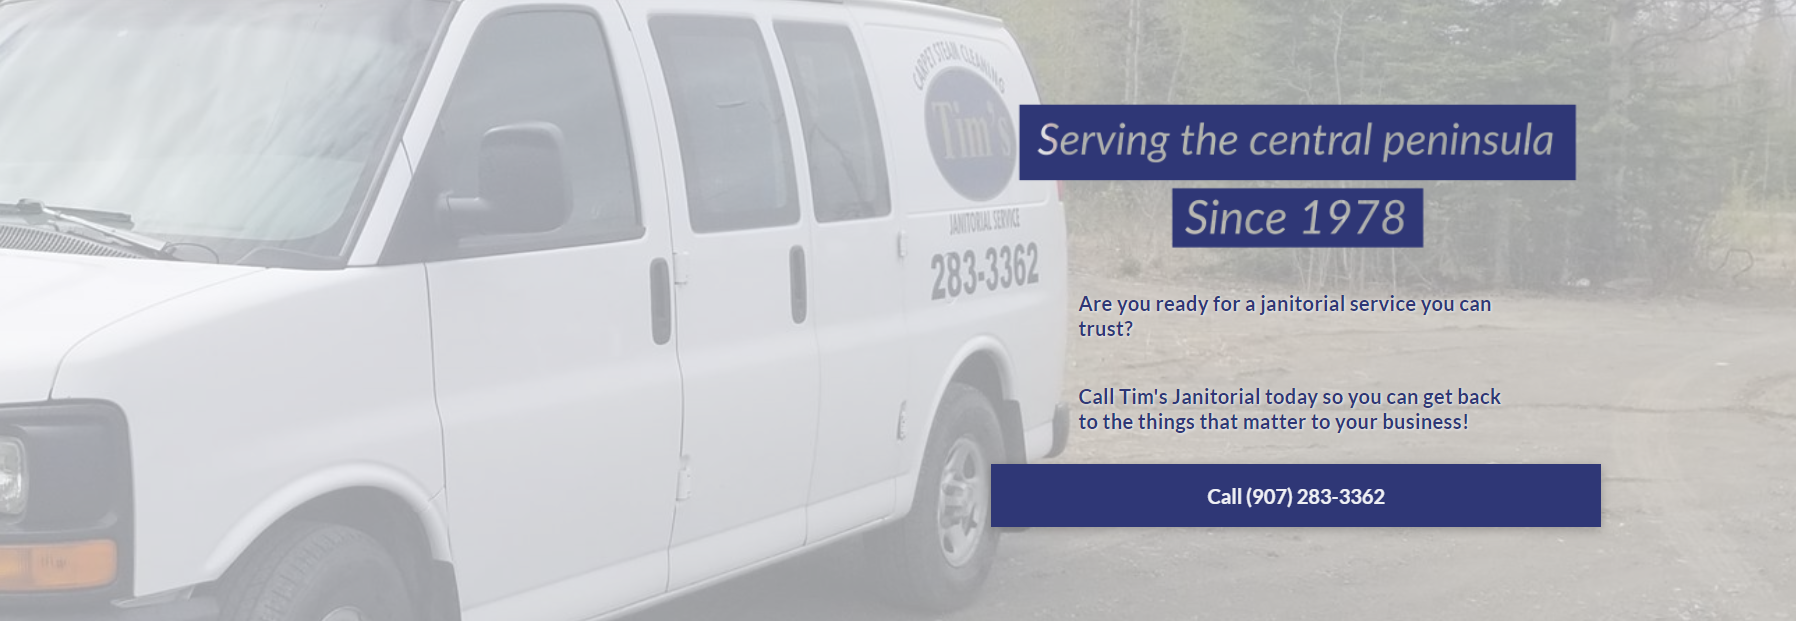 Tim's Janitorial, Inc